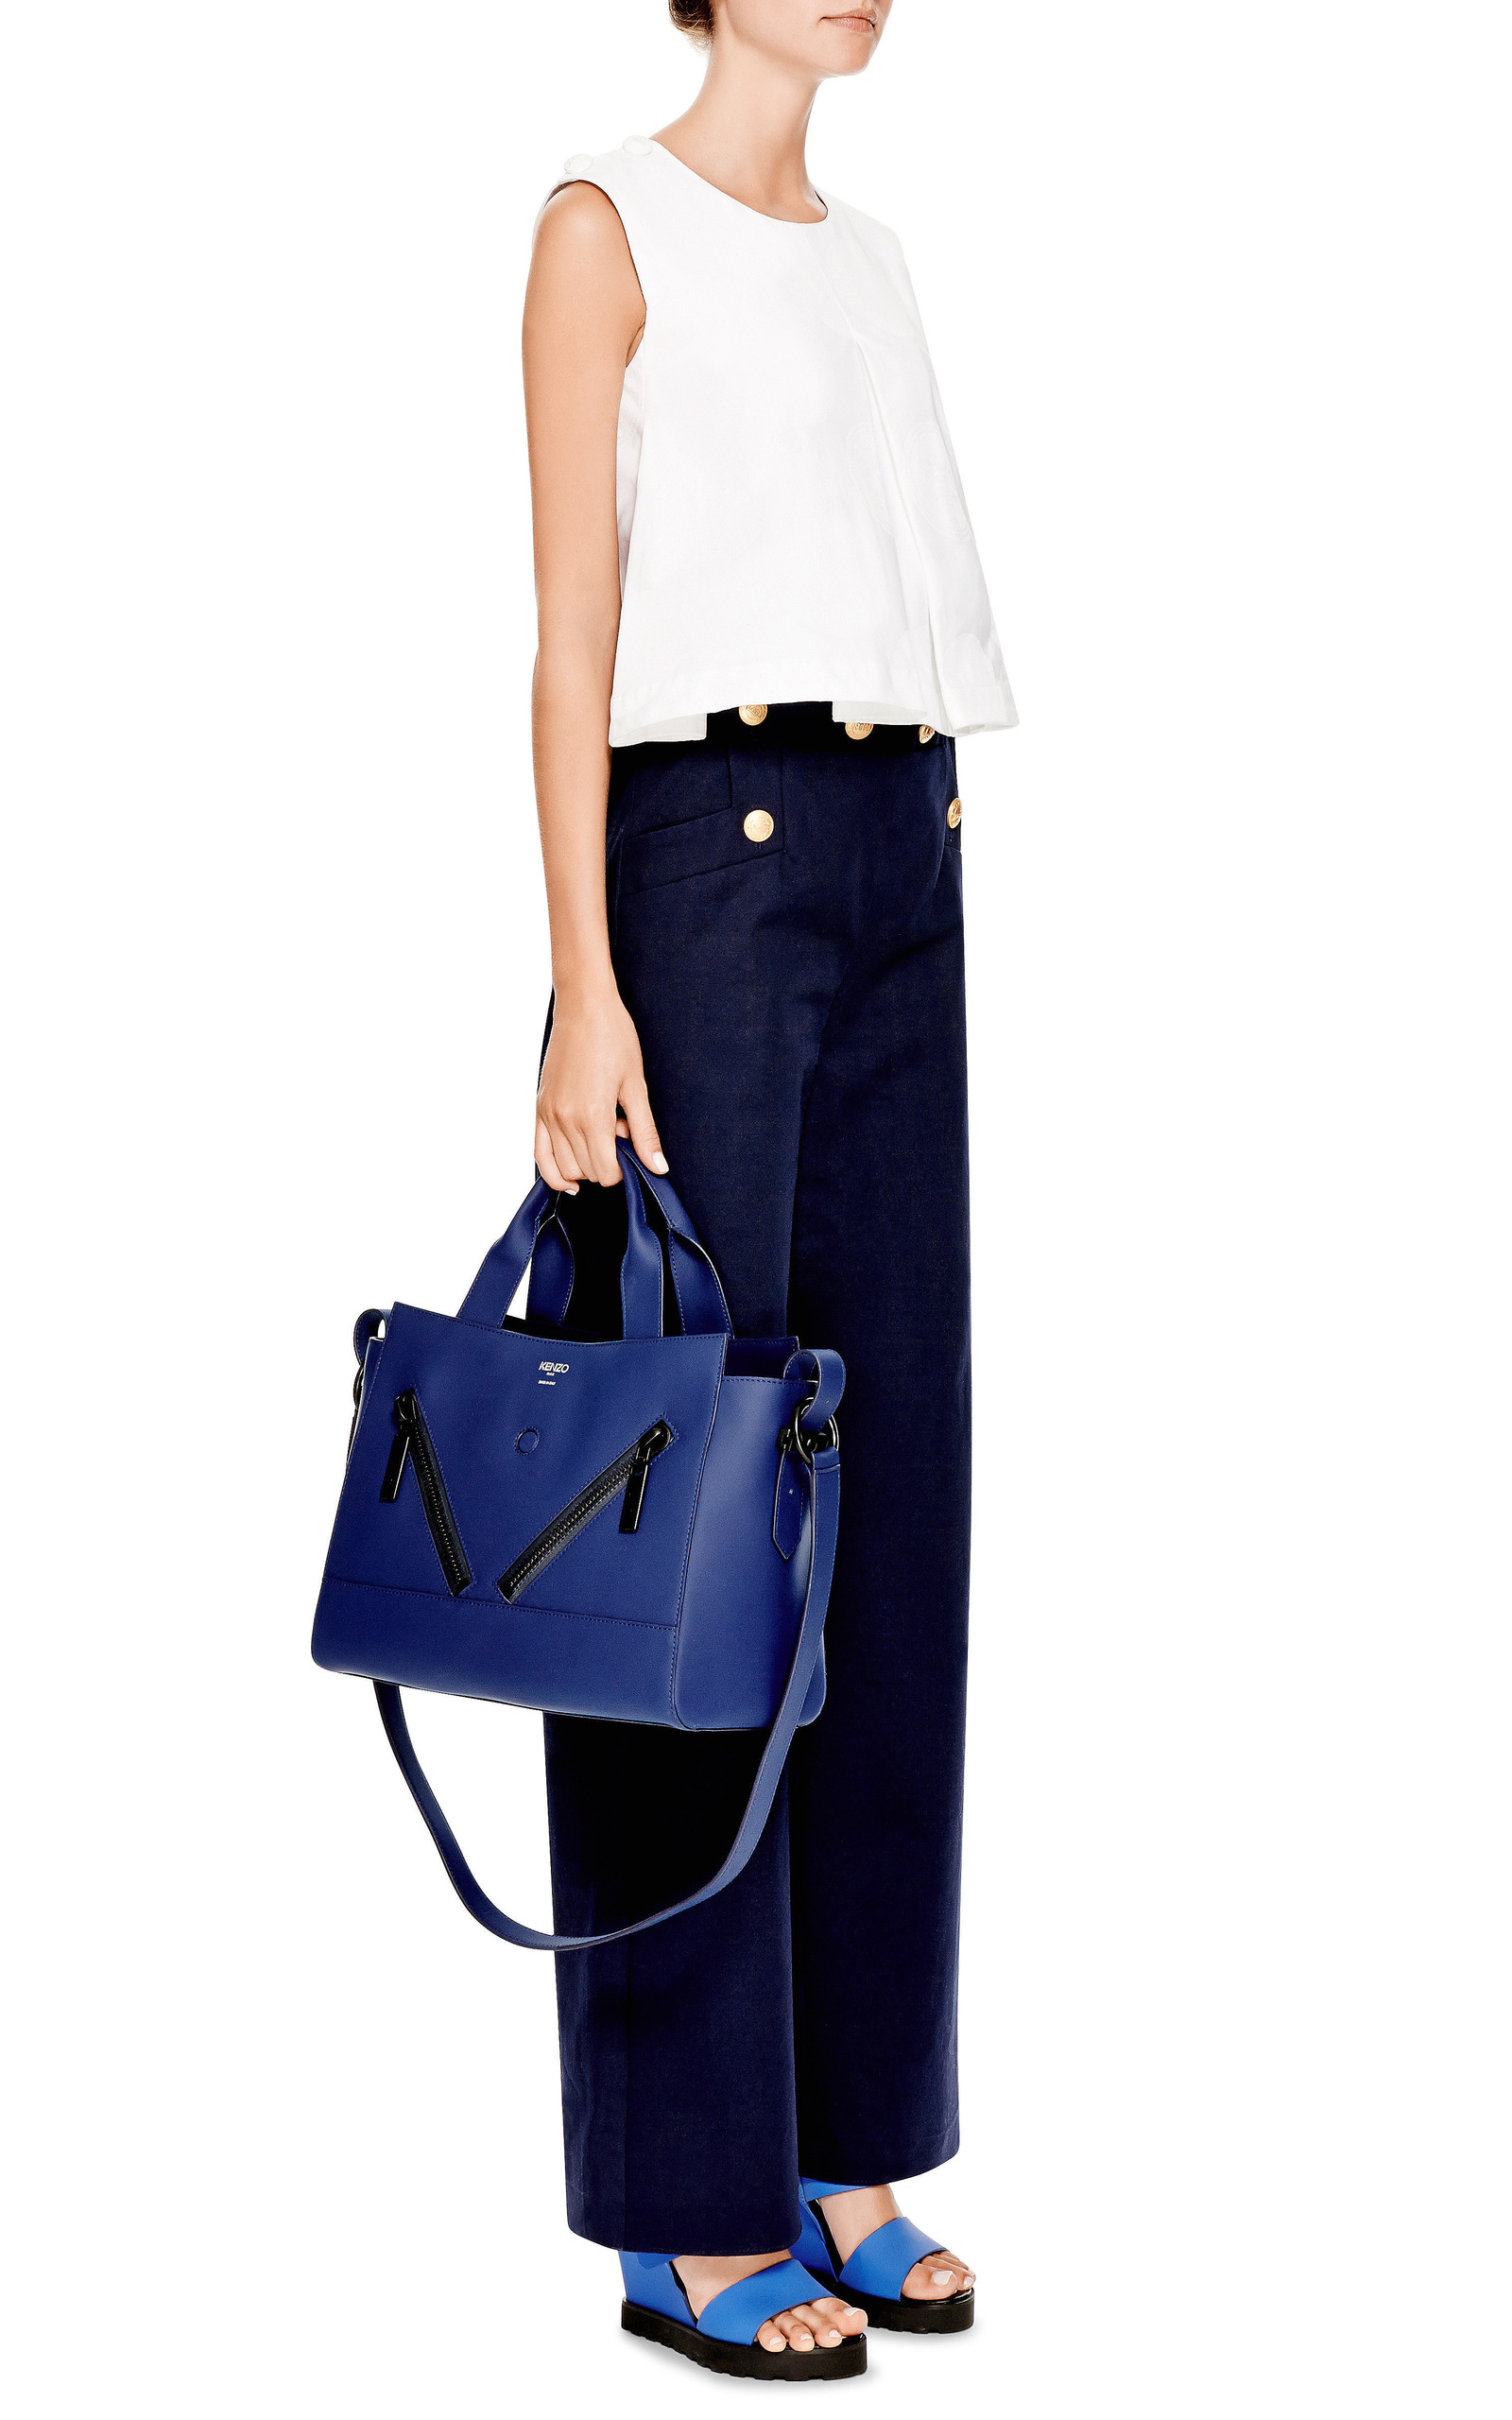 b95cf911e1 Kalifornia Medium Tote Bag In Bleu Marine Gommato Leather by Kenzo ...